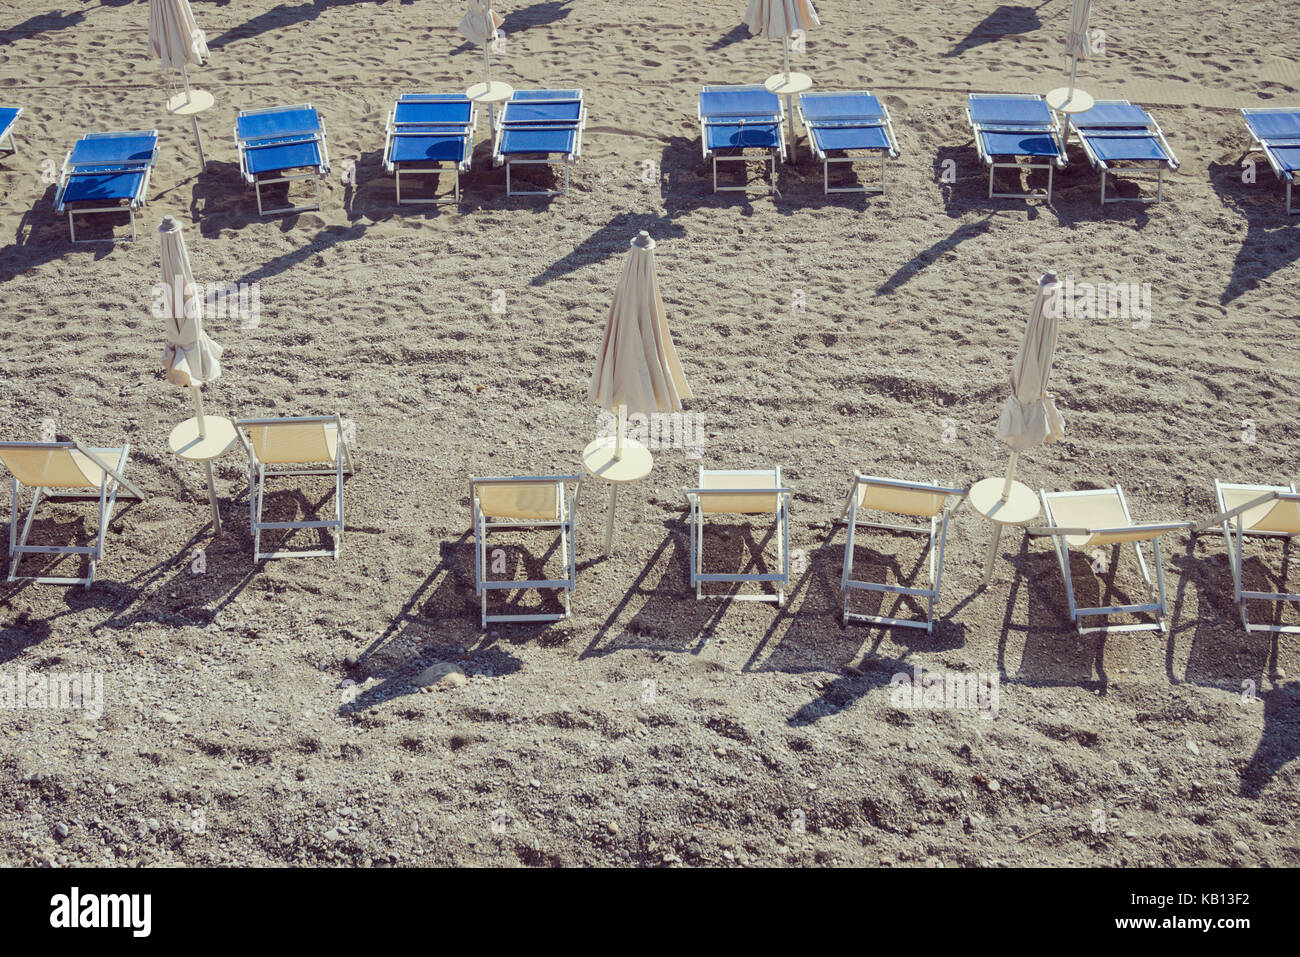 high angle view of a beach with sunbeds and sunshades - Stock Image